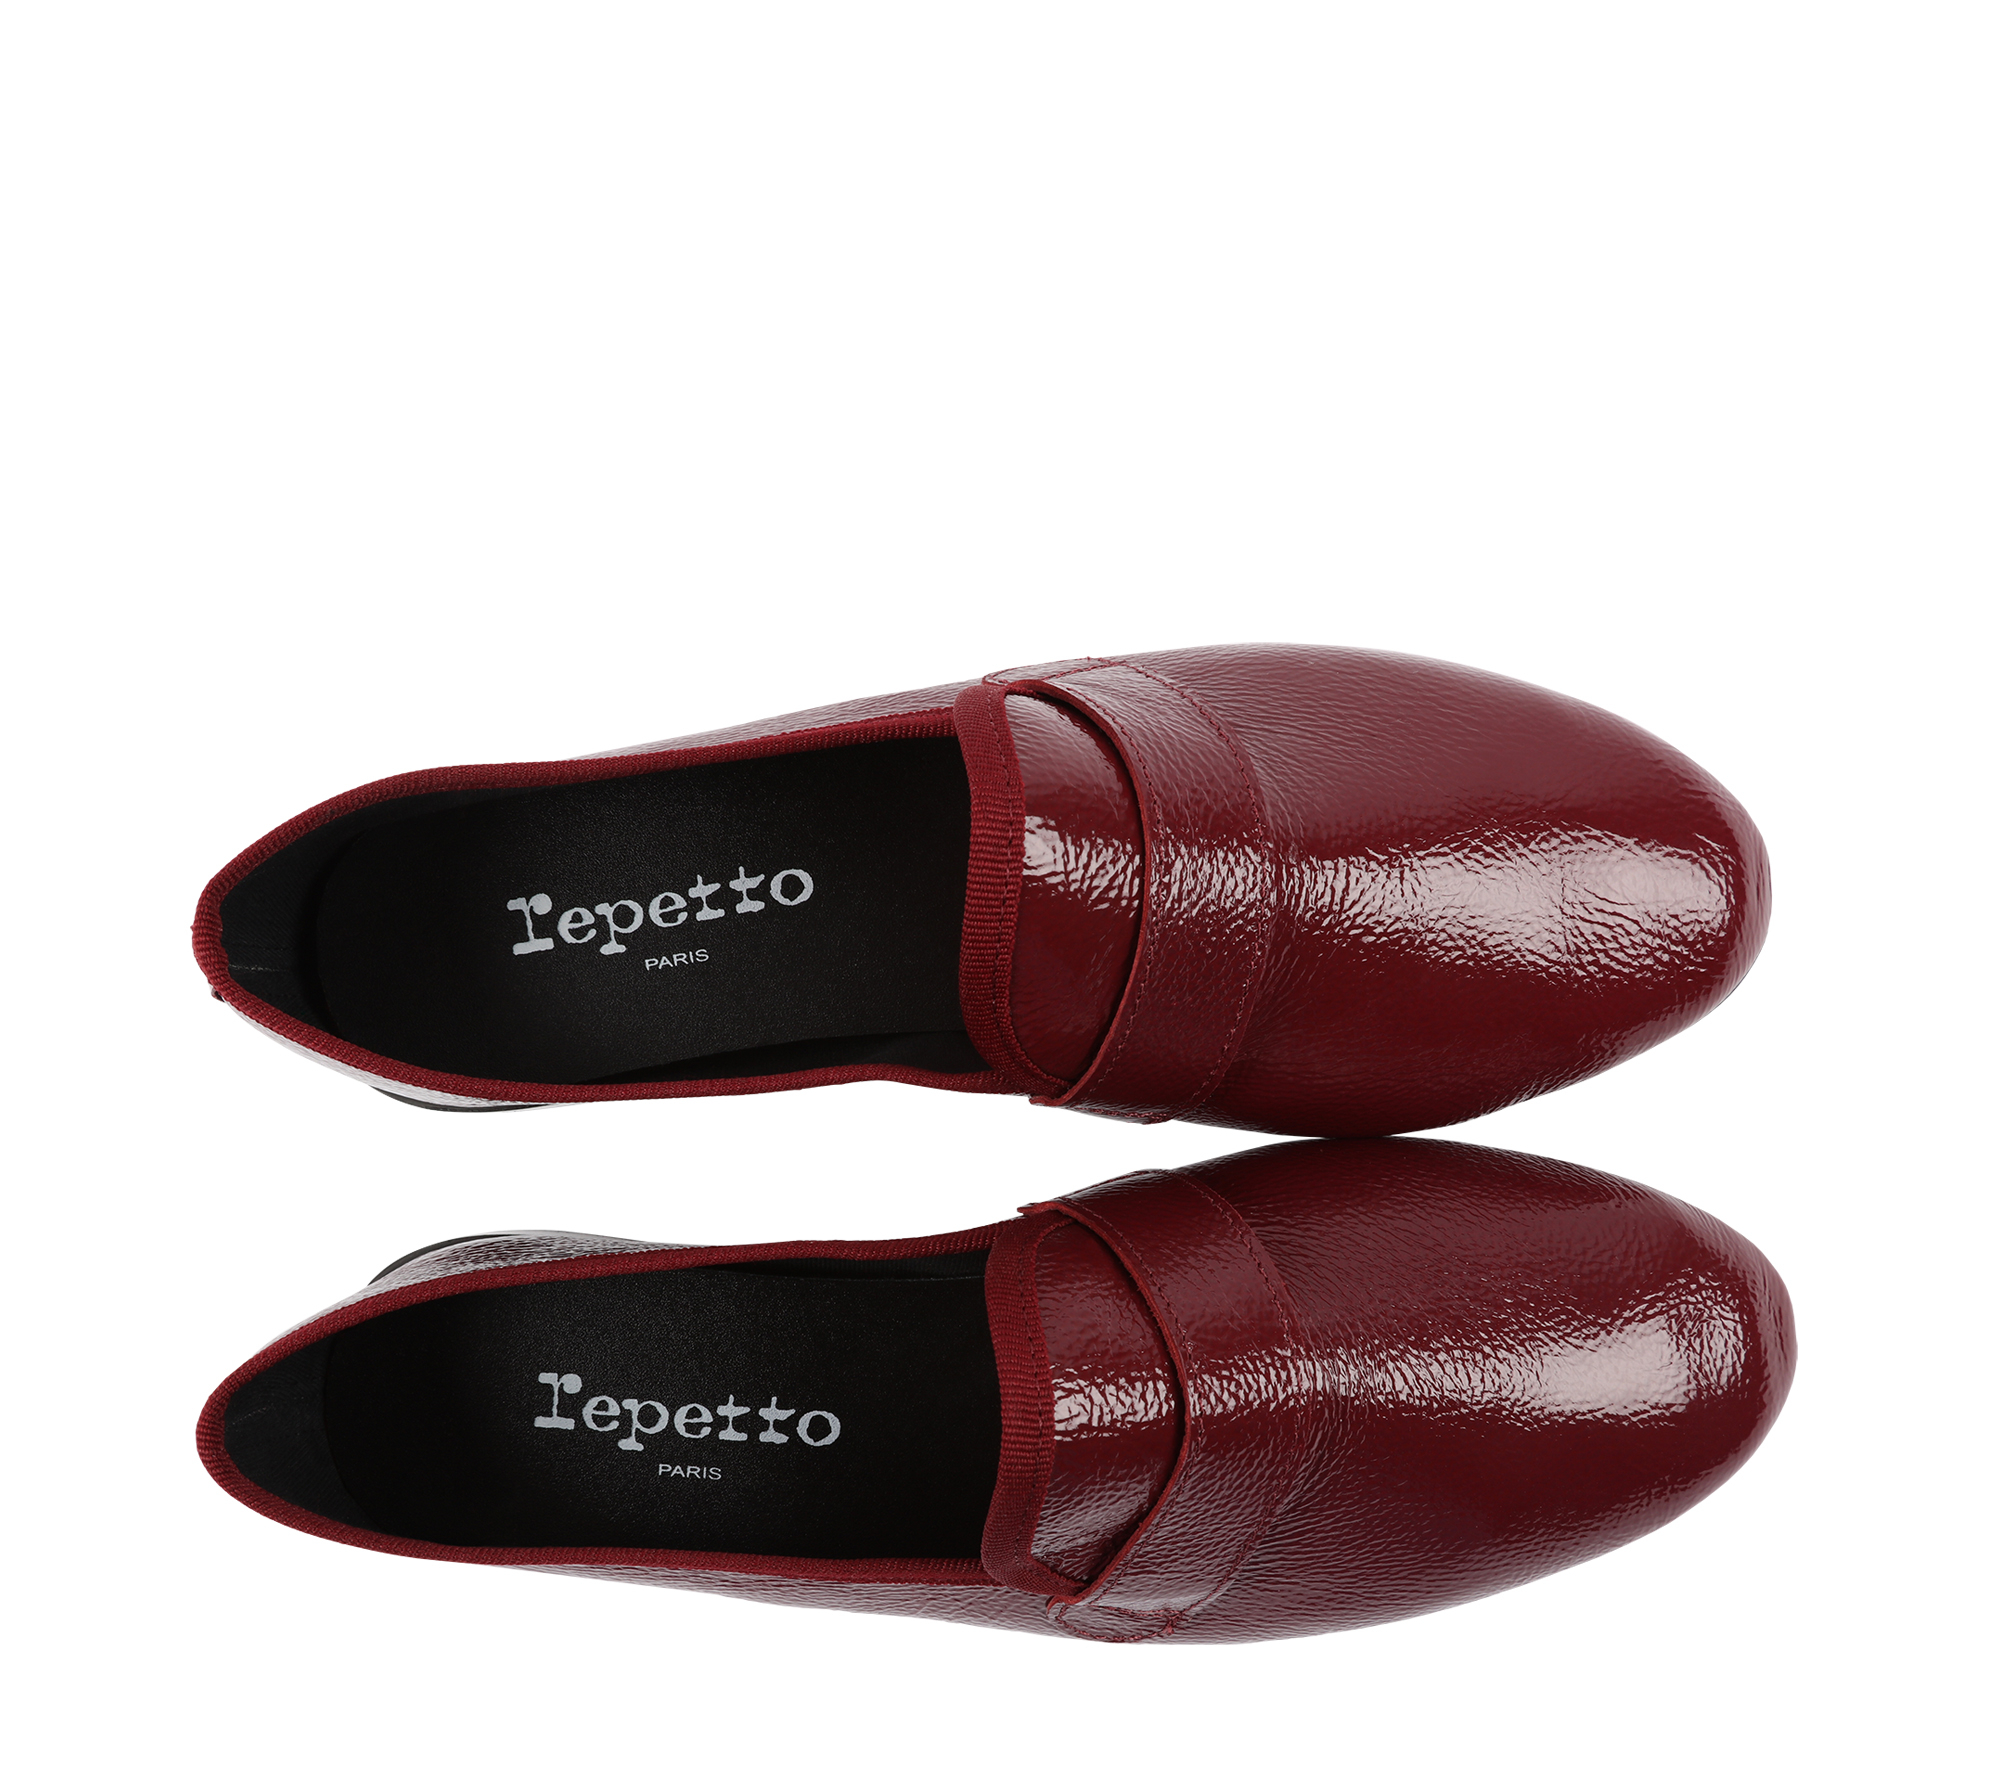 Maestro loafers